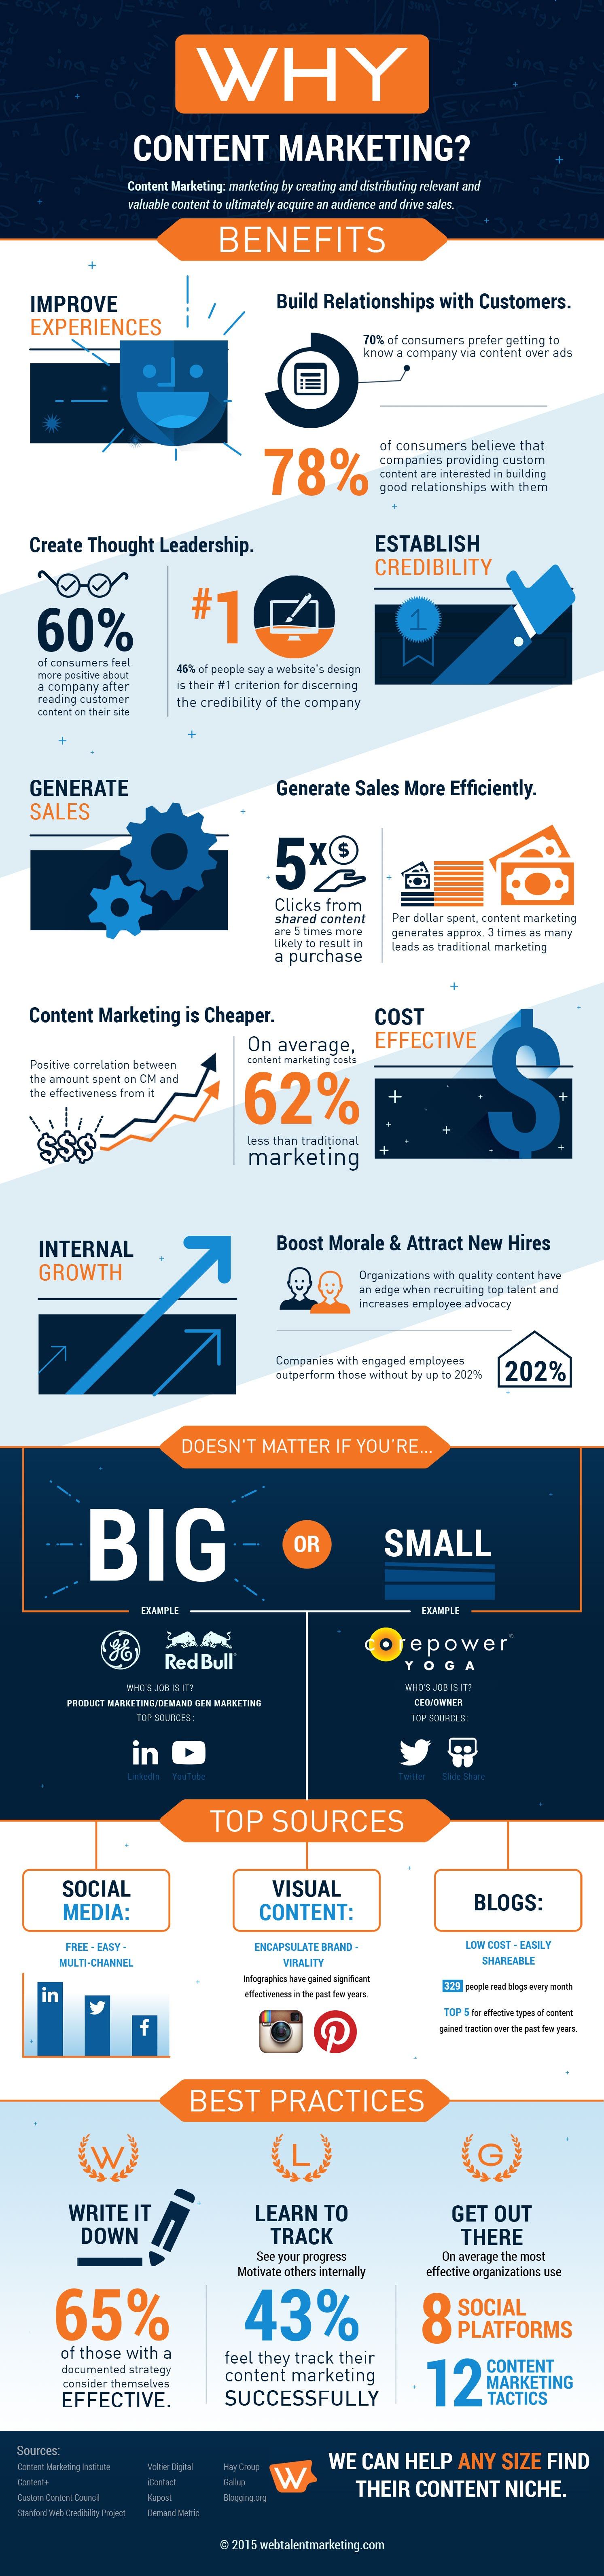 why content marketing infographic